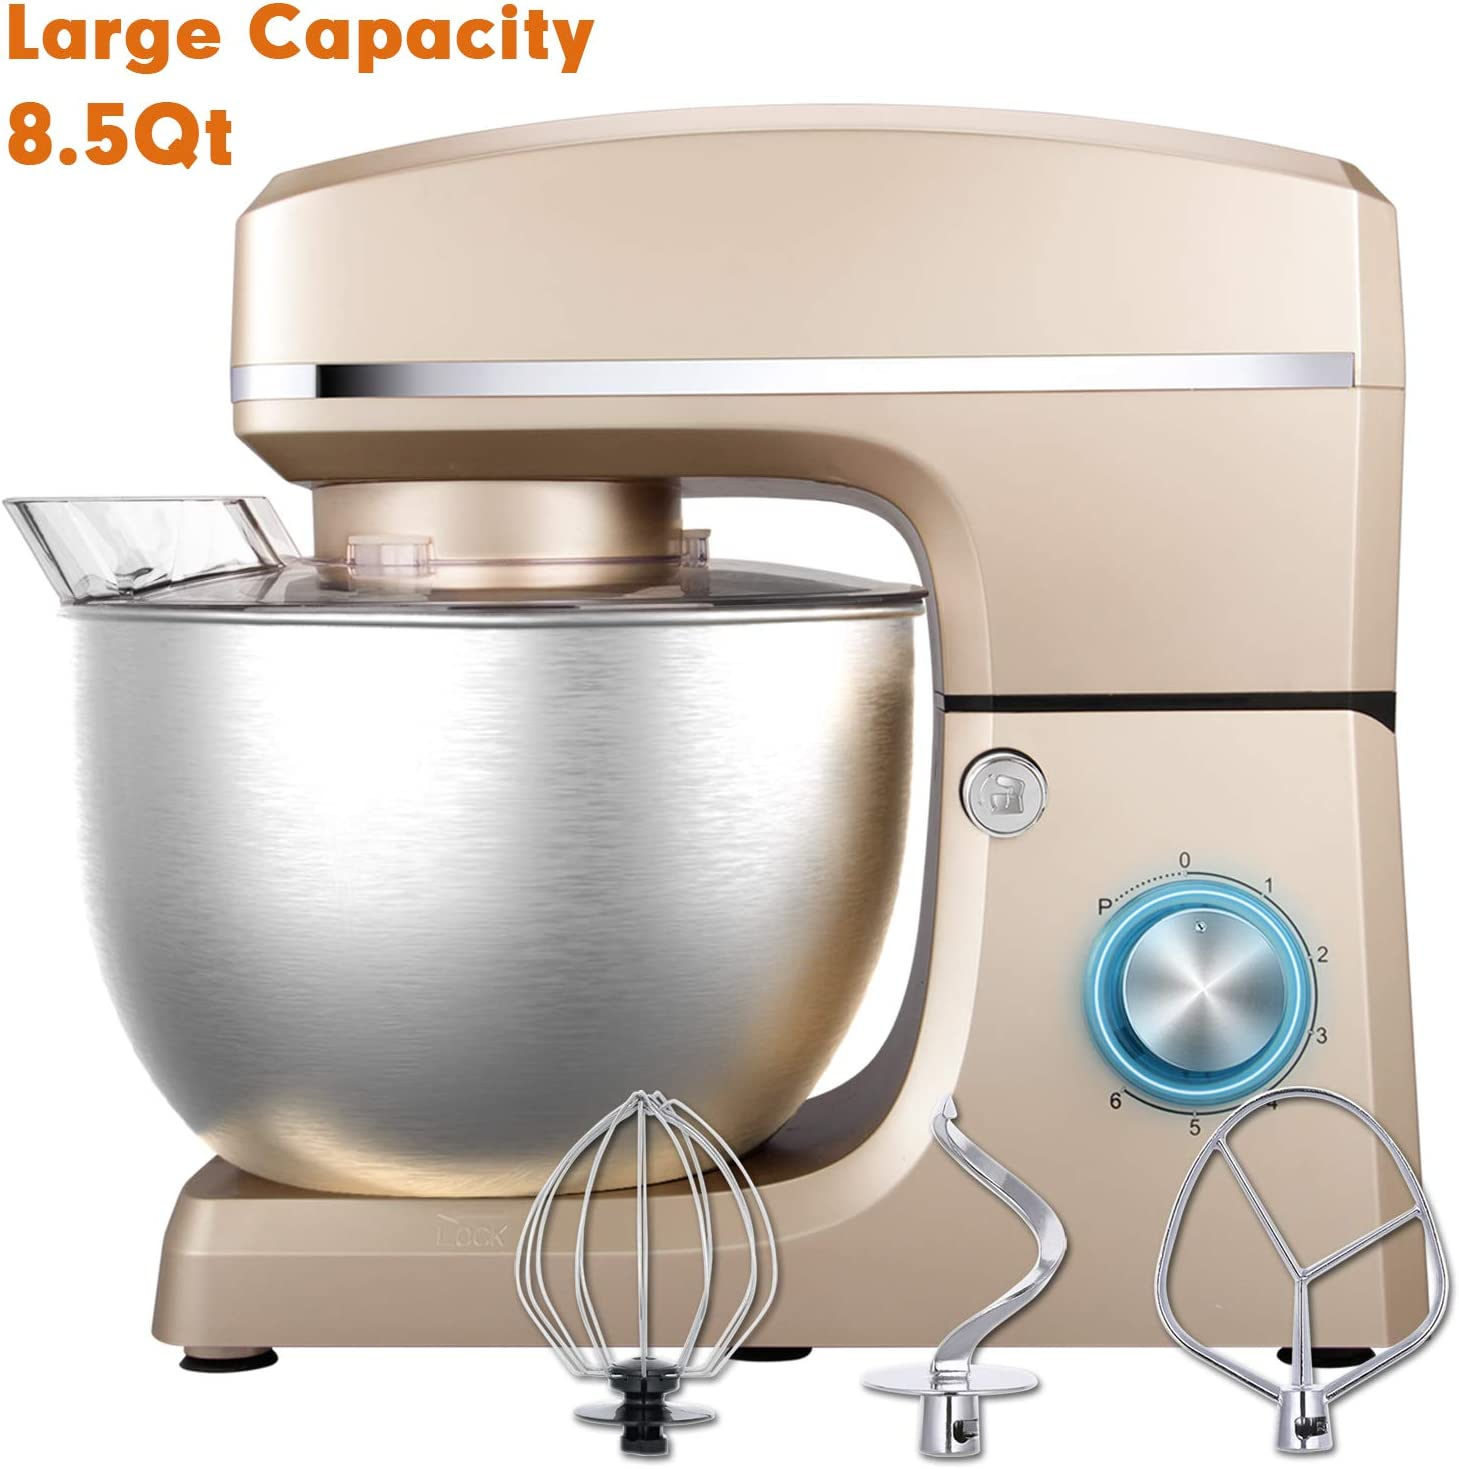 Stand Mixer, Sincalong 8.5QT 660W 6 Speed Tilt Head Electric Mixer with Stainless Steel Bowl, Splash Guard, Dough Hook, Flat Beater, Whisk Dough Kneading Machine, Champagne